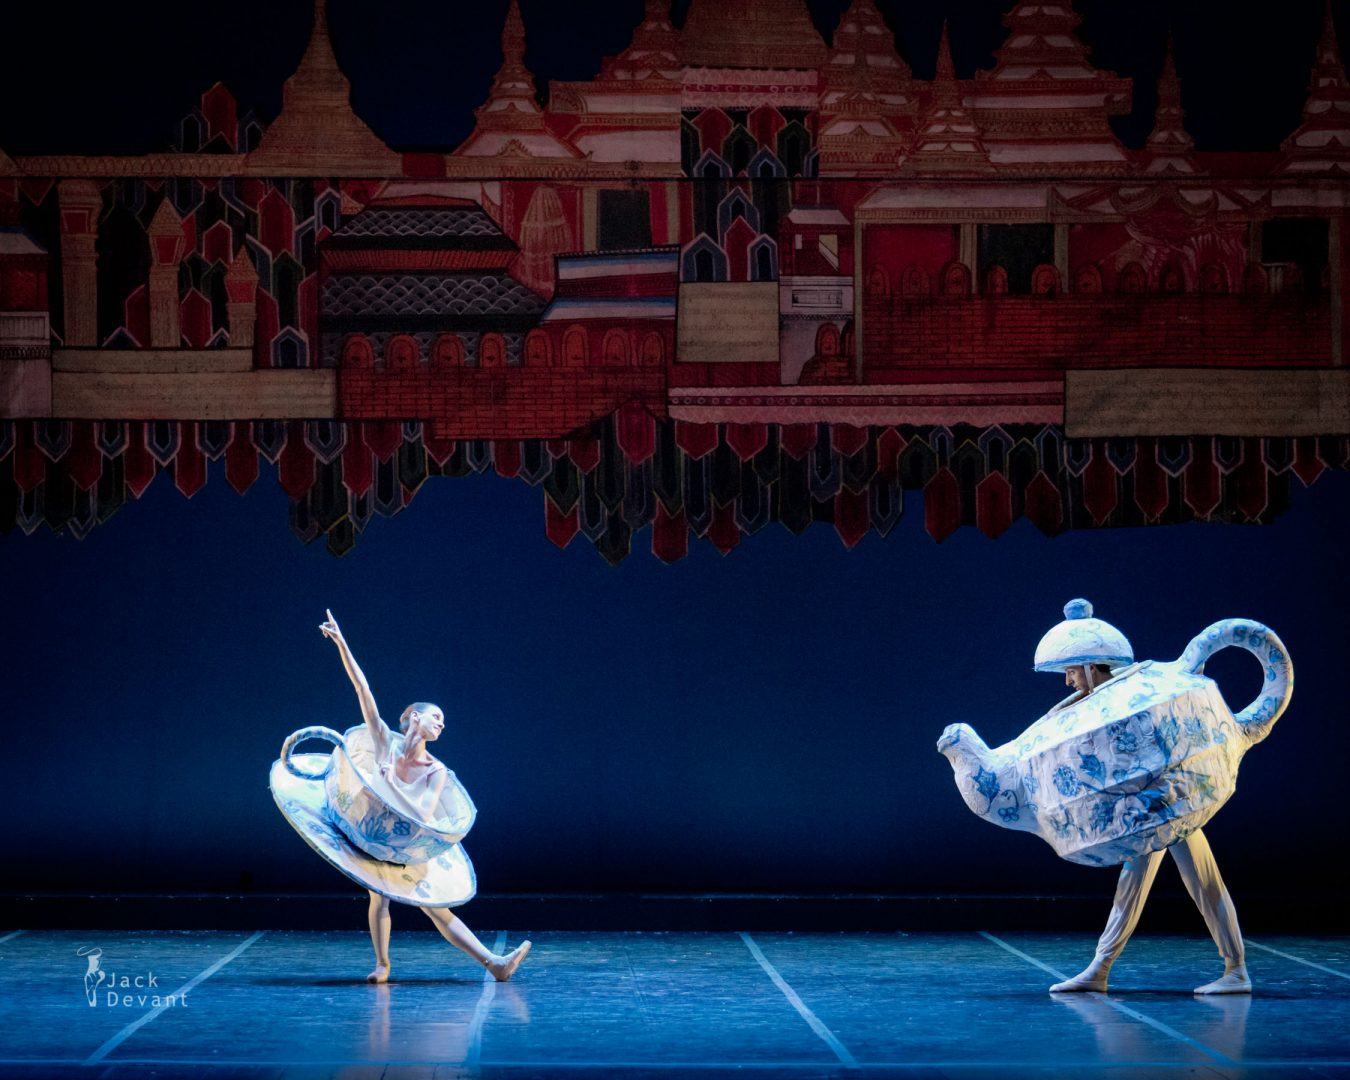 Sabrina Montanaro and Francesco De Stefano in Danza cinese in The Nutcracker (Schiaccianoci)